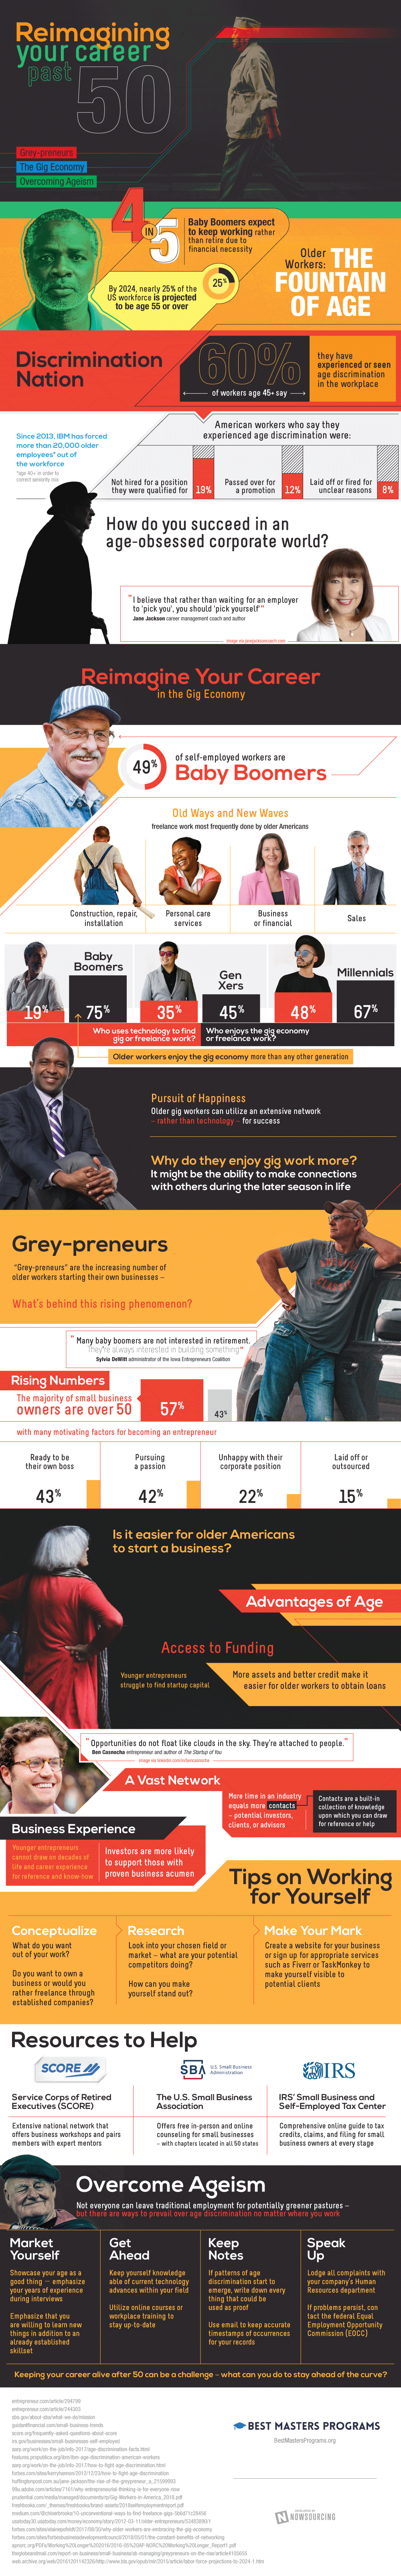 What is a Greypreneur?